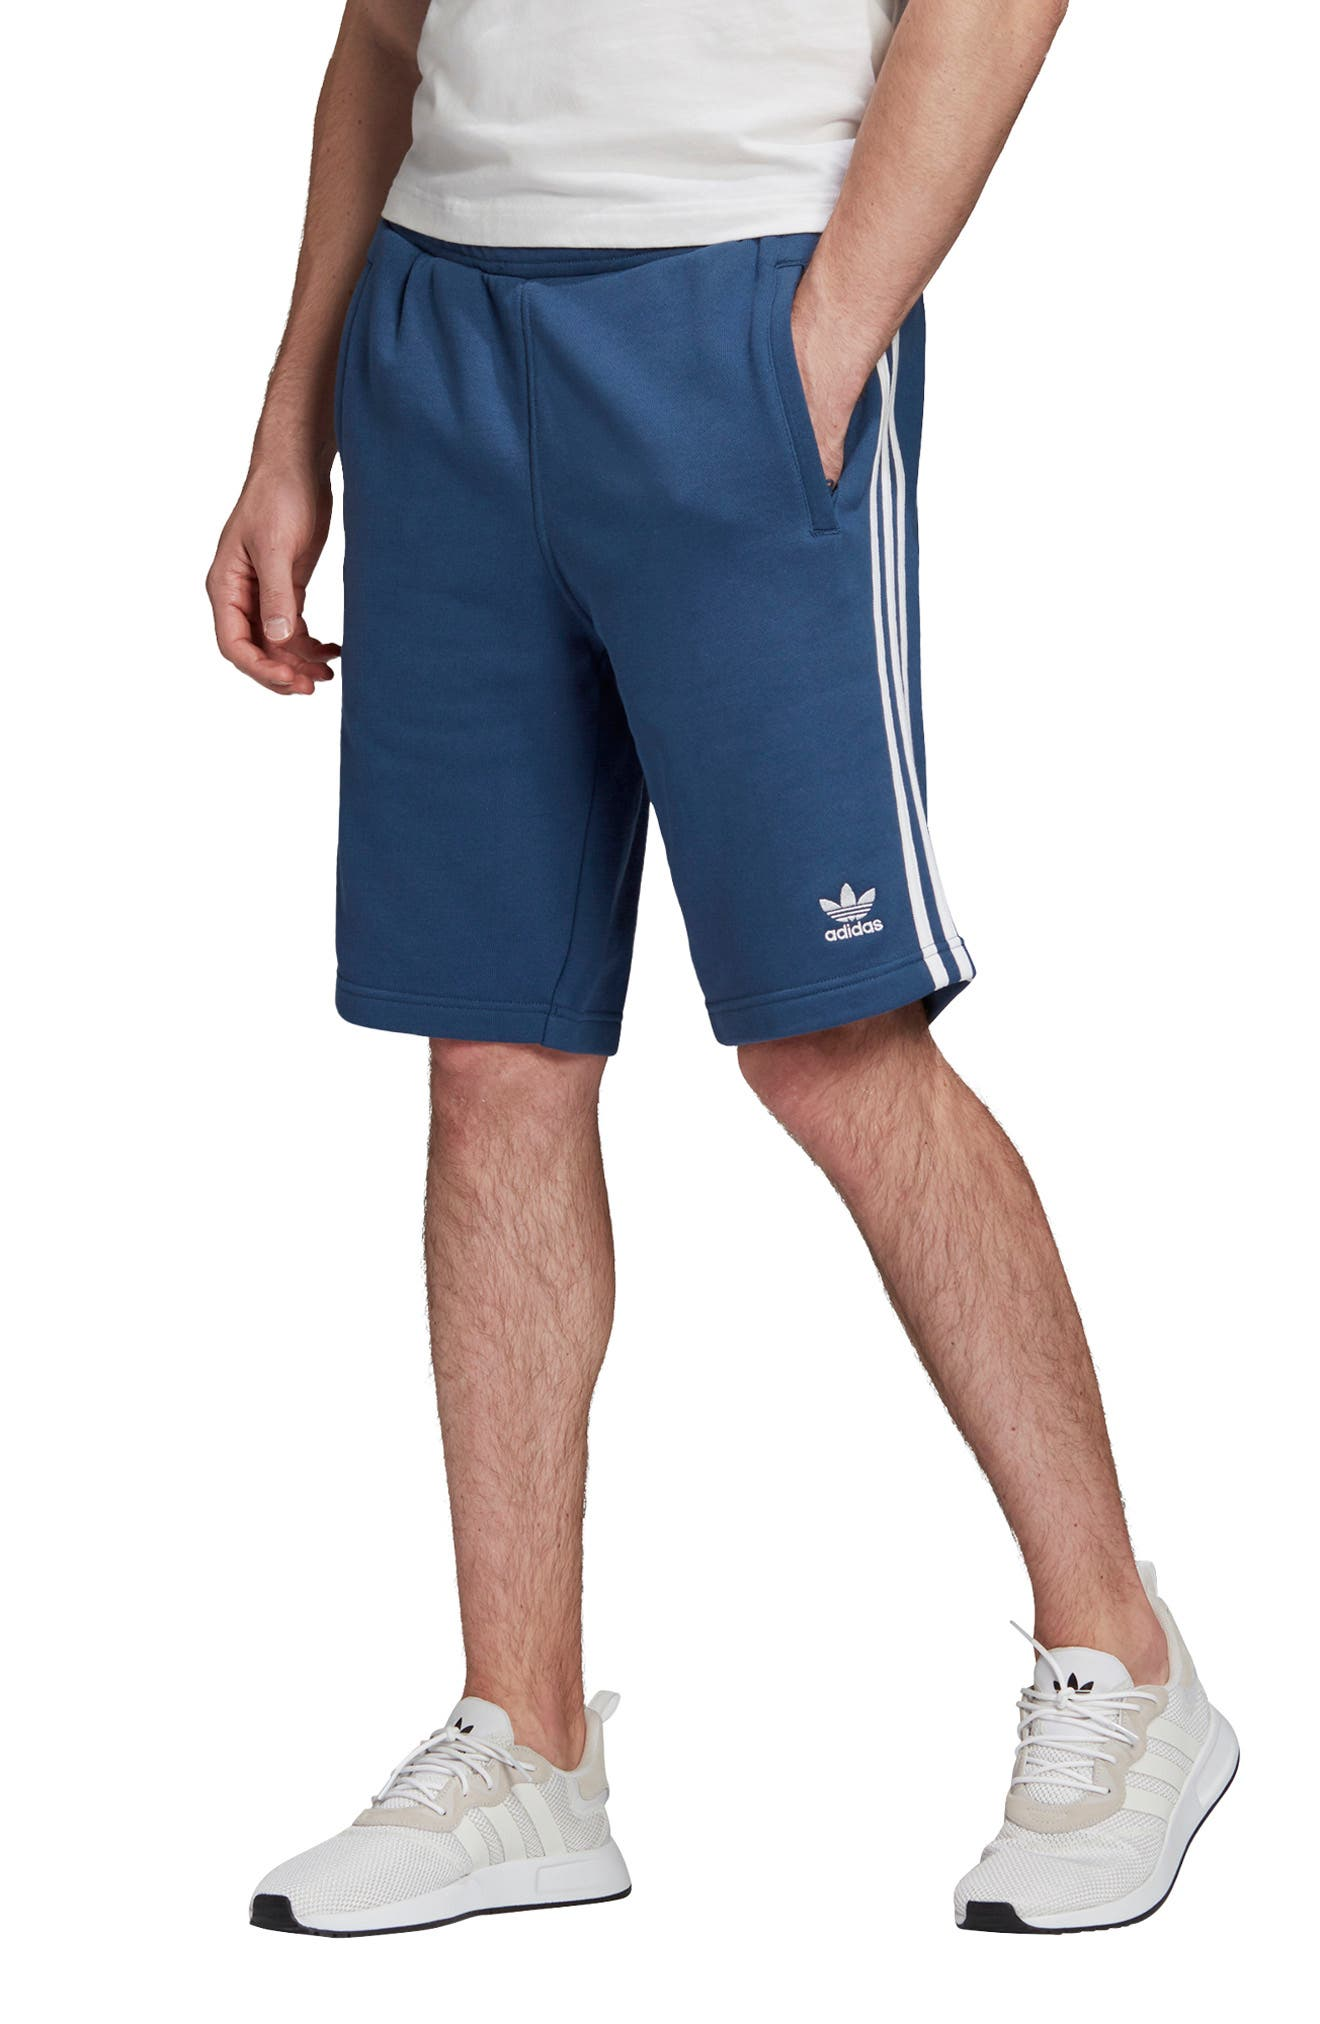 Mens Adidas Big & Tall Clothing | Kohl's